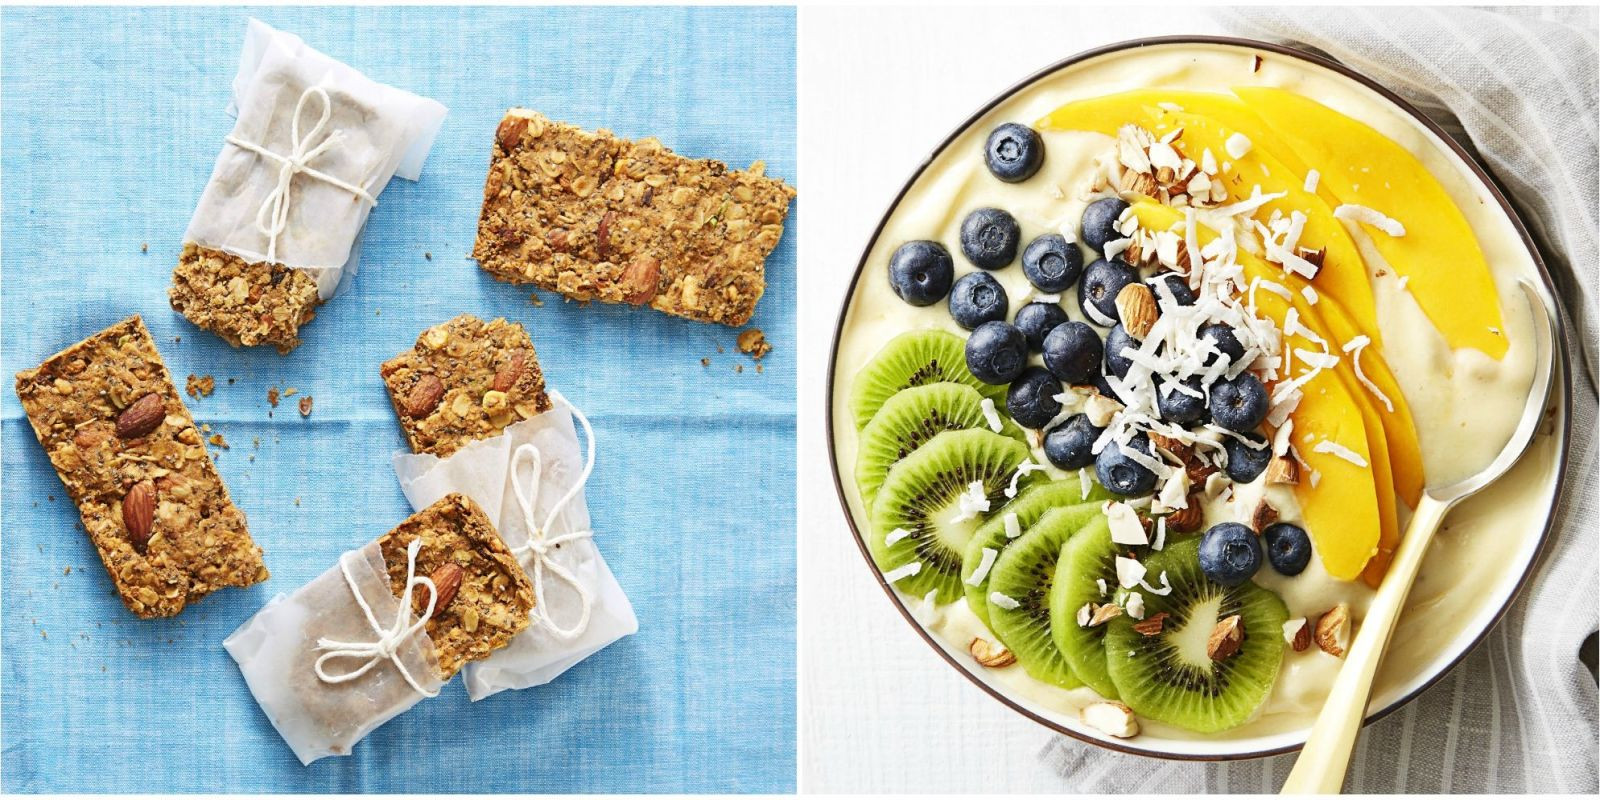 Quick Healthy Breakfast Ideas  48 Easy Healthy Breakfast Ideas Recipes for Quick and